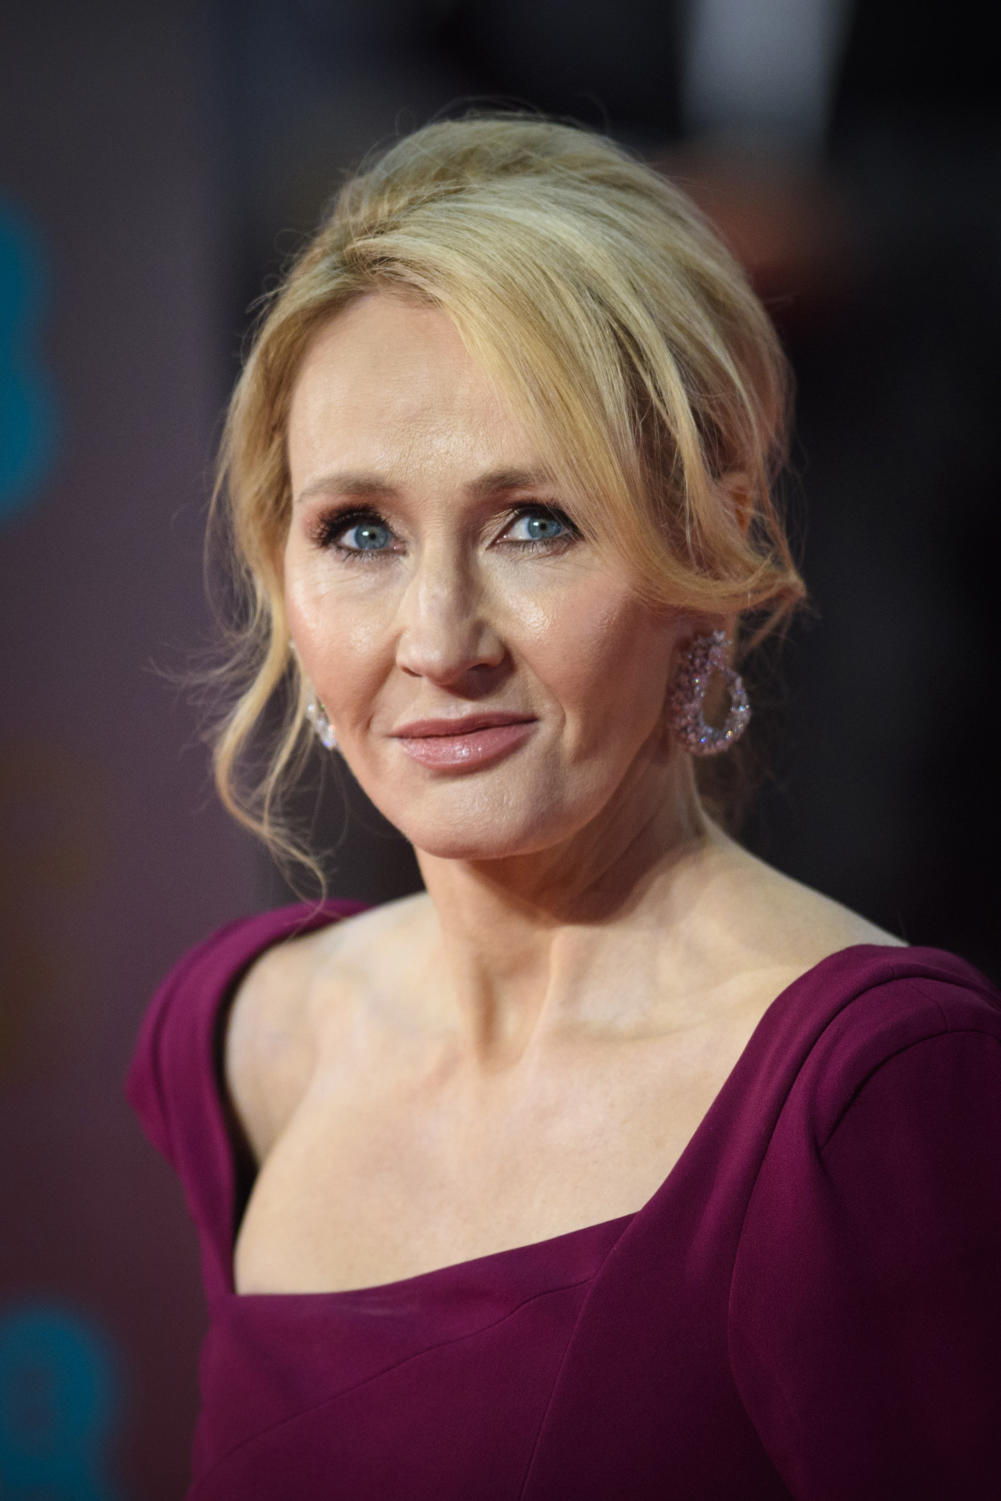 JK Rowling attended the EE British Academy Film Awards held at the Royal Albert Hall in London, UK on Feb. 12, 2017.